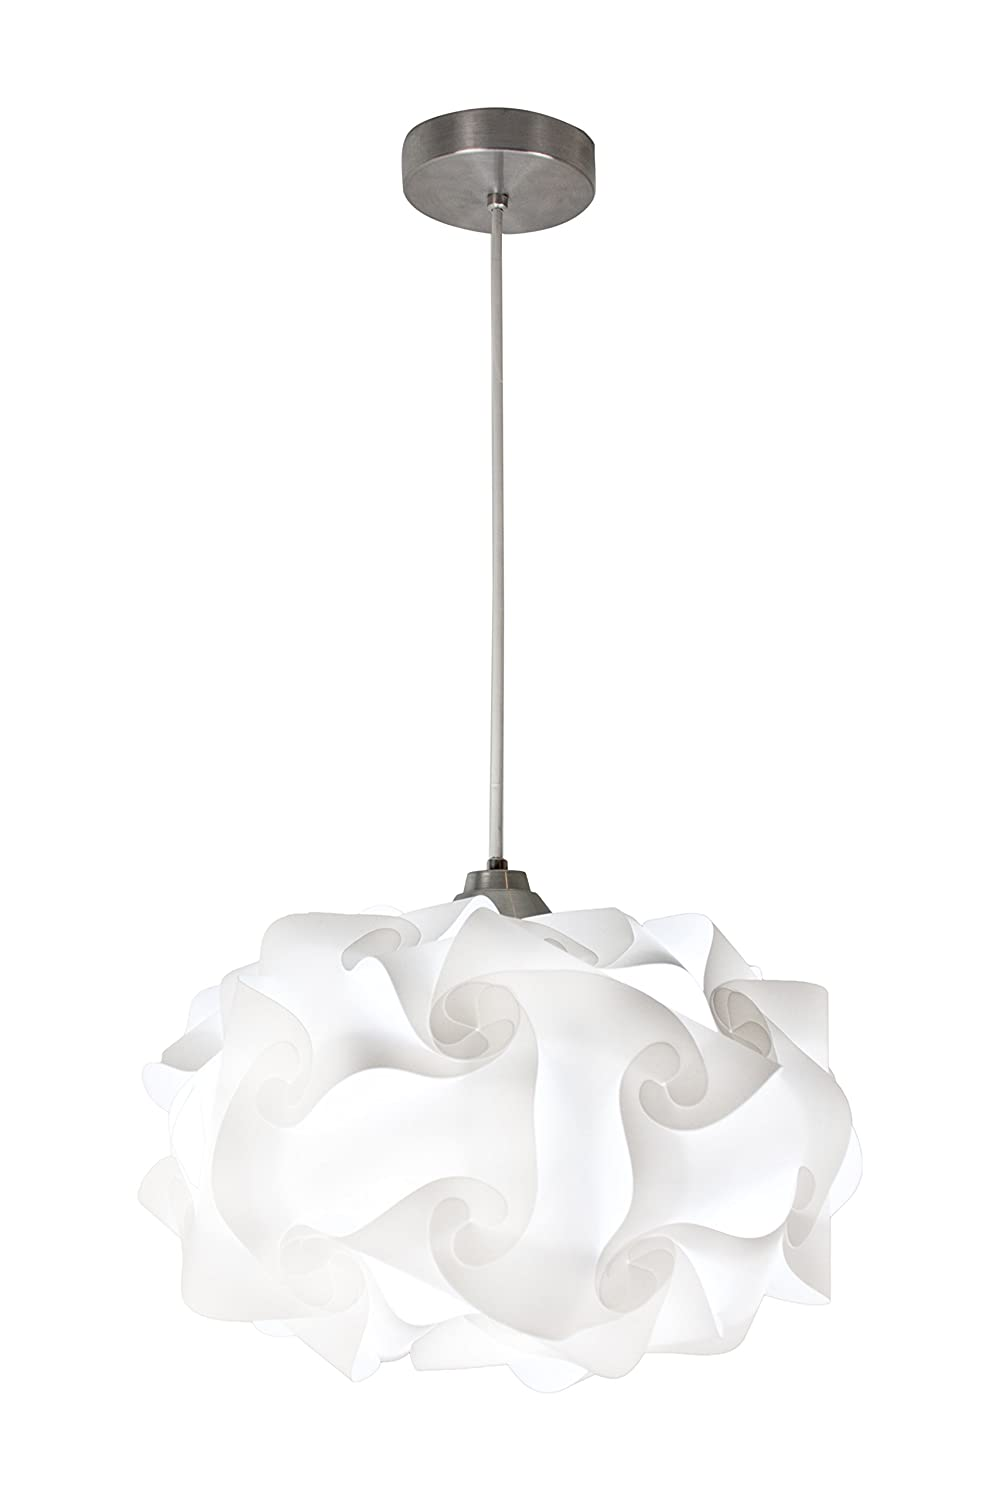 EQLight PP4M01 Cloud Light Contemporary Pendant White Medium